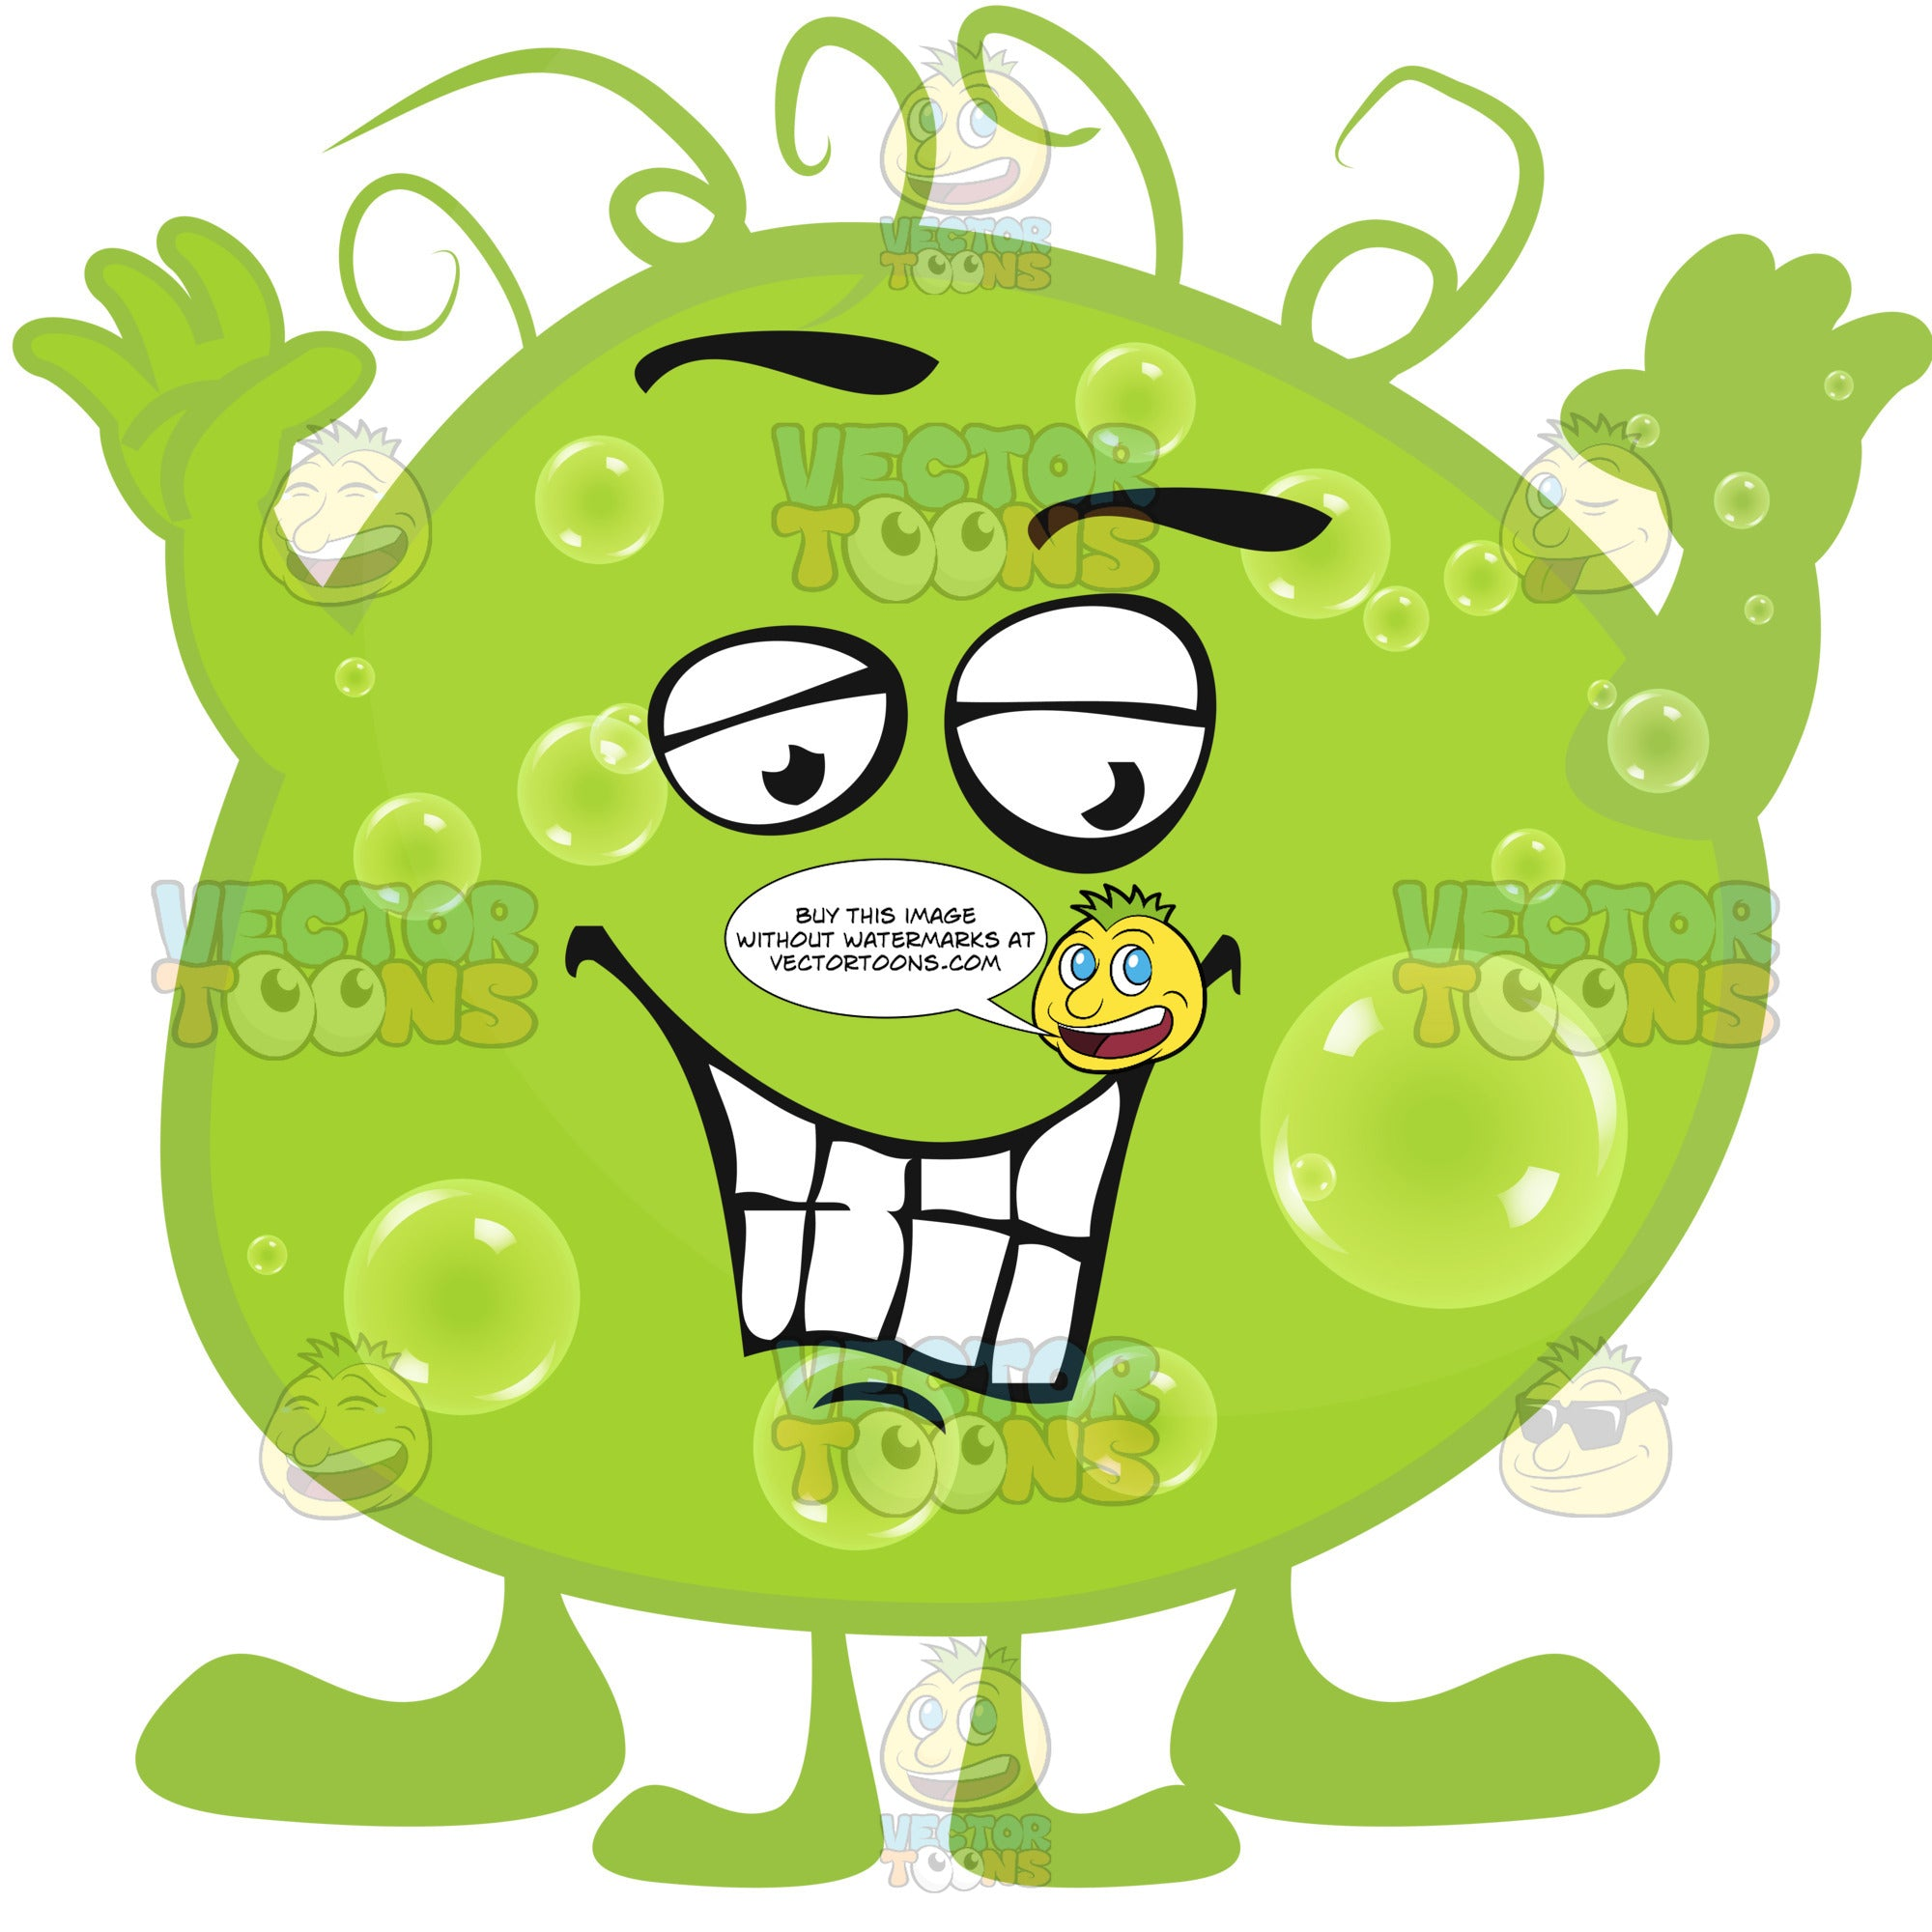 Green Blob Germ With Smiling Face And Hands In Air